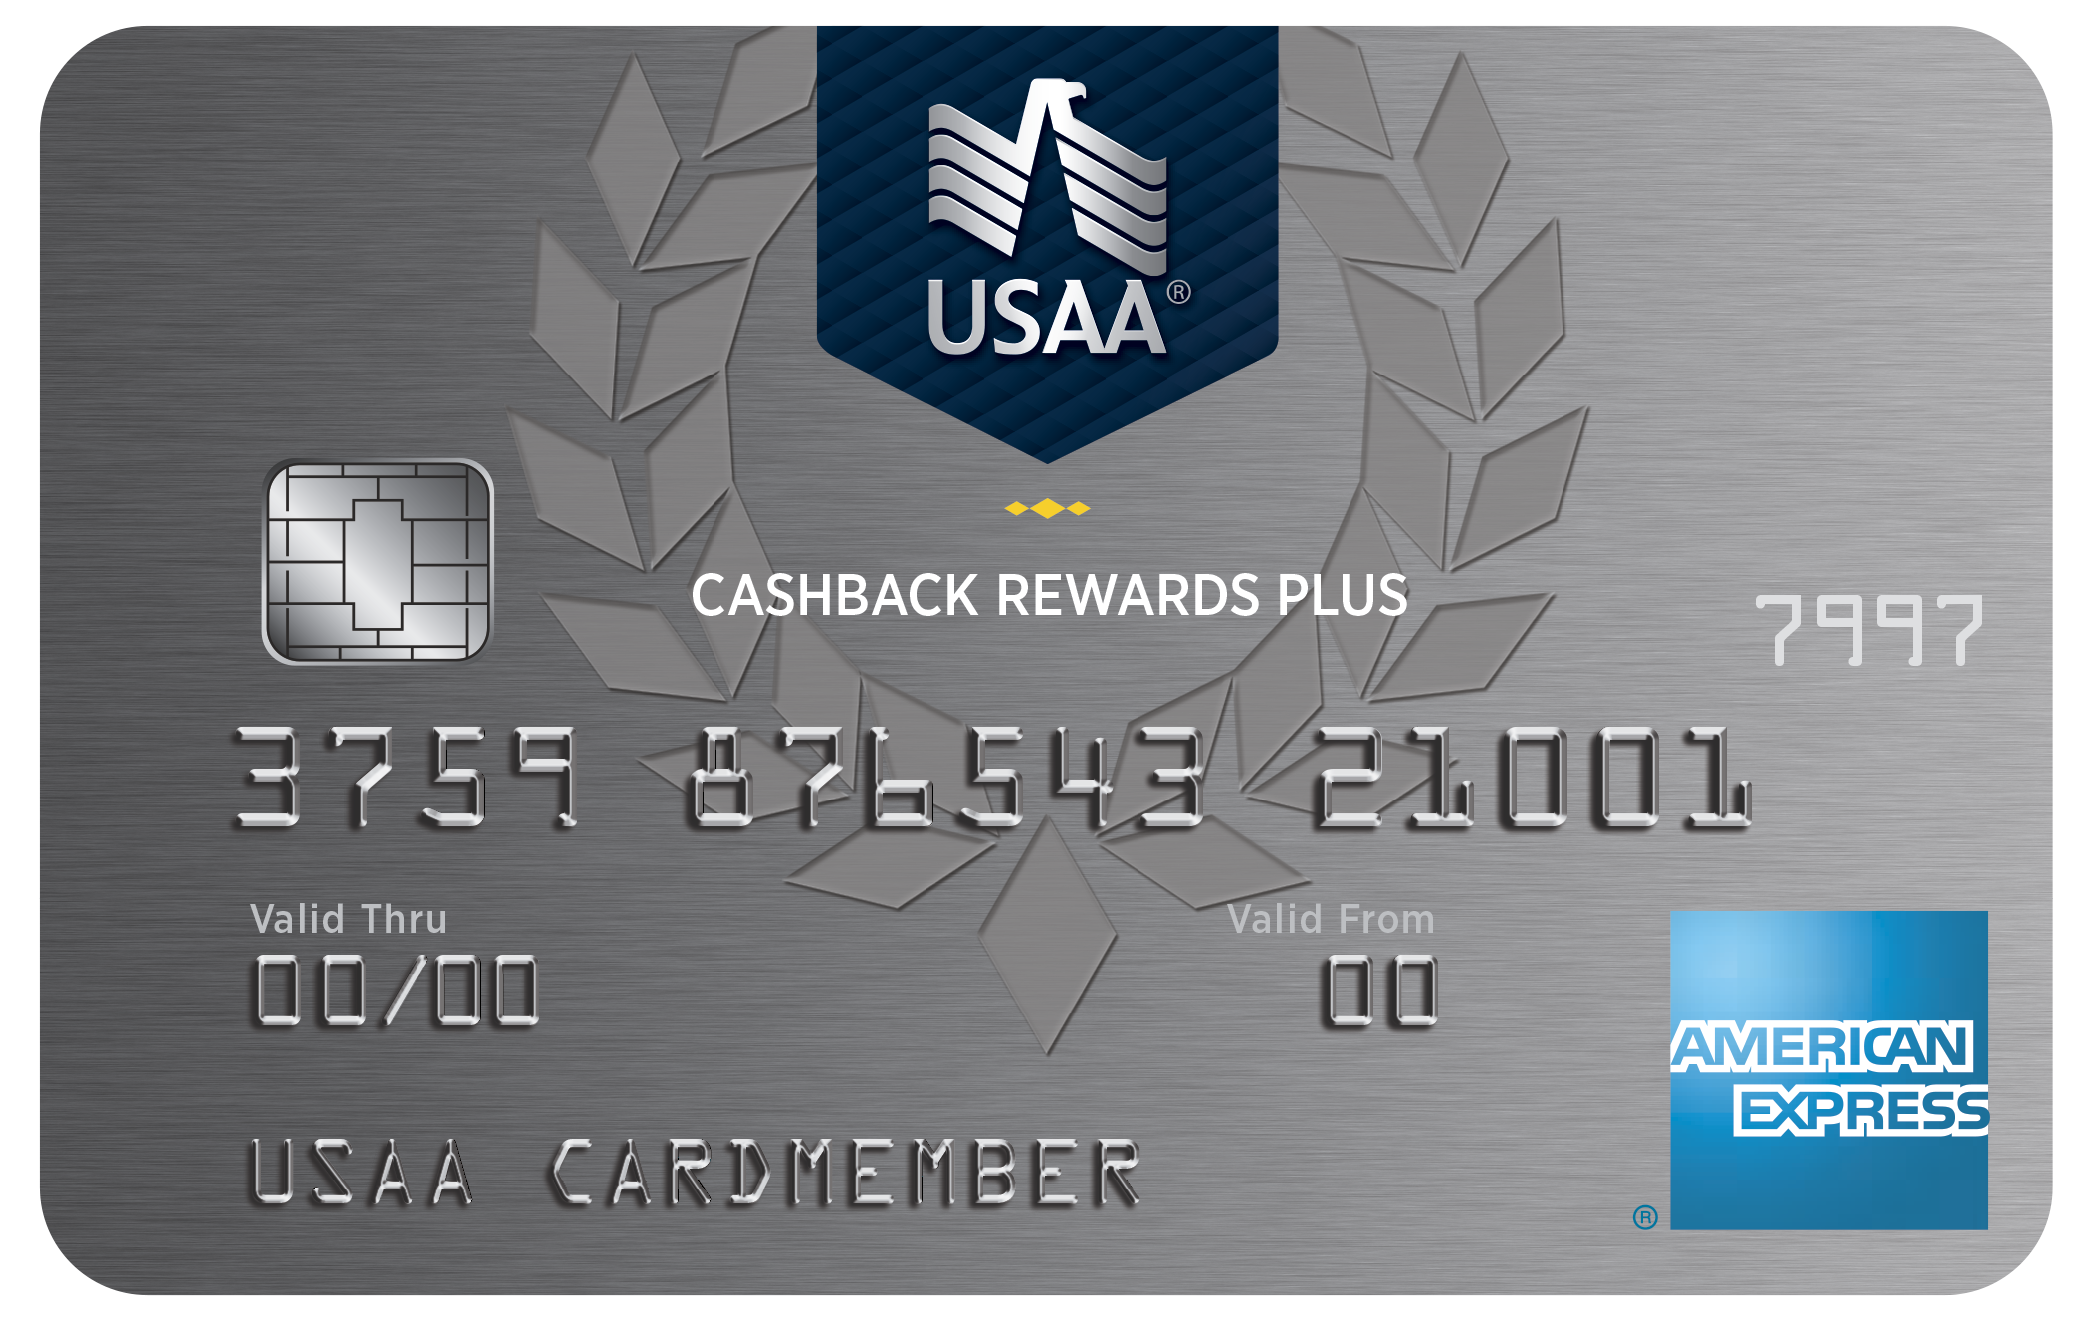 Furniture Credit Card Approval Odds Tips Tricks When Applying For A Credit Card 10 Ways To